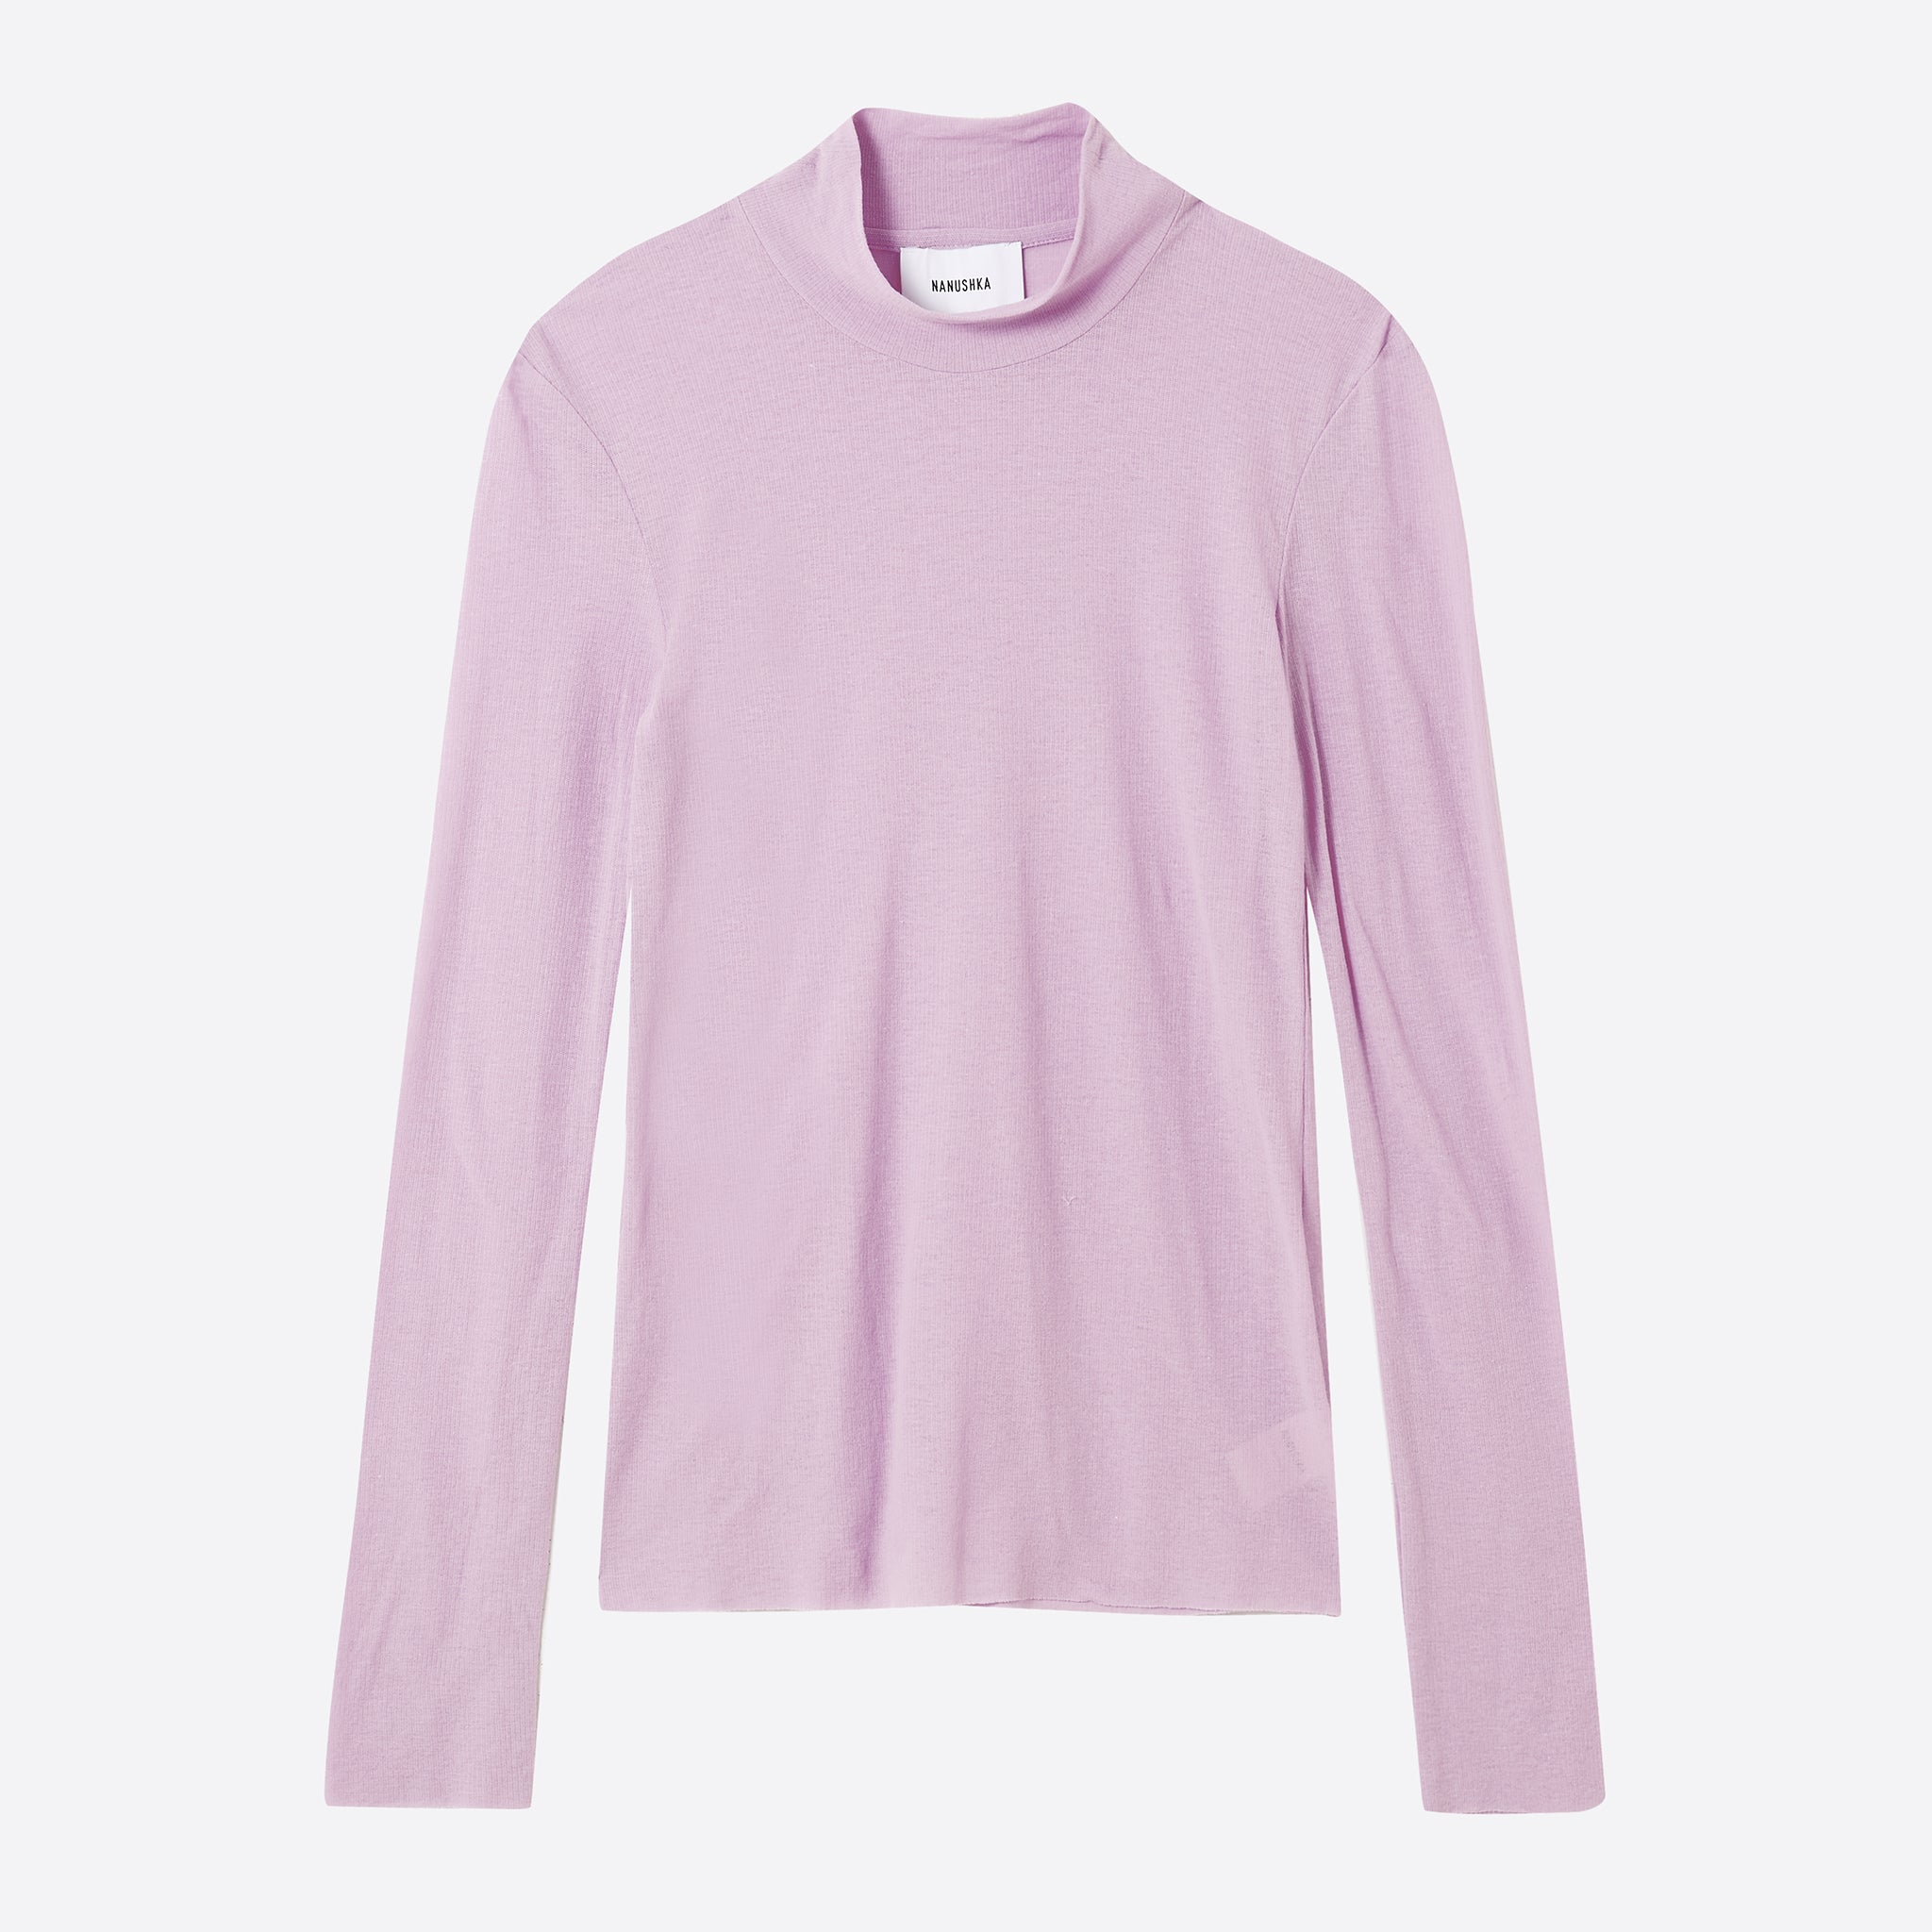 Nanushka Alana Mock Neck Top in Dusty Pink